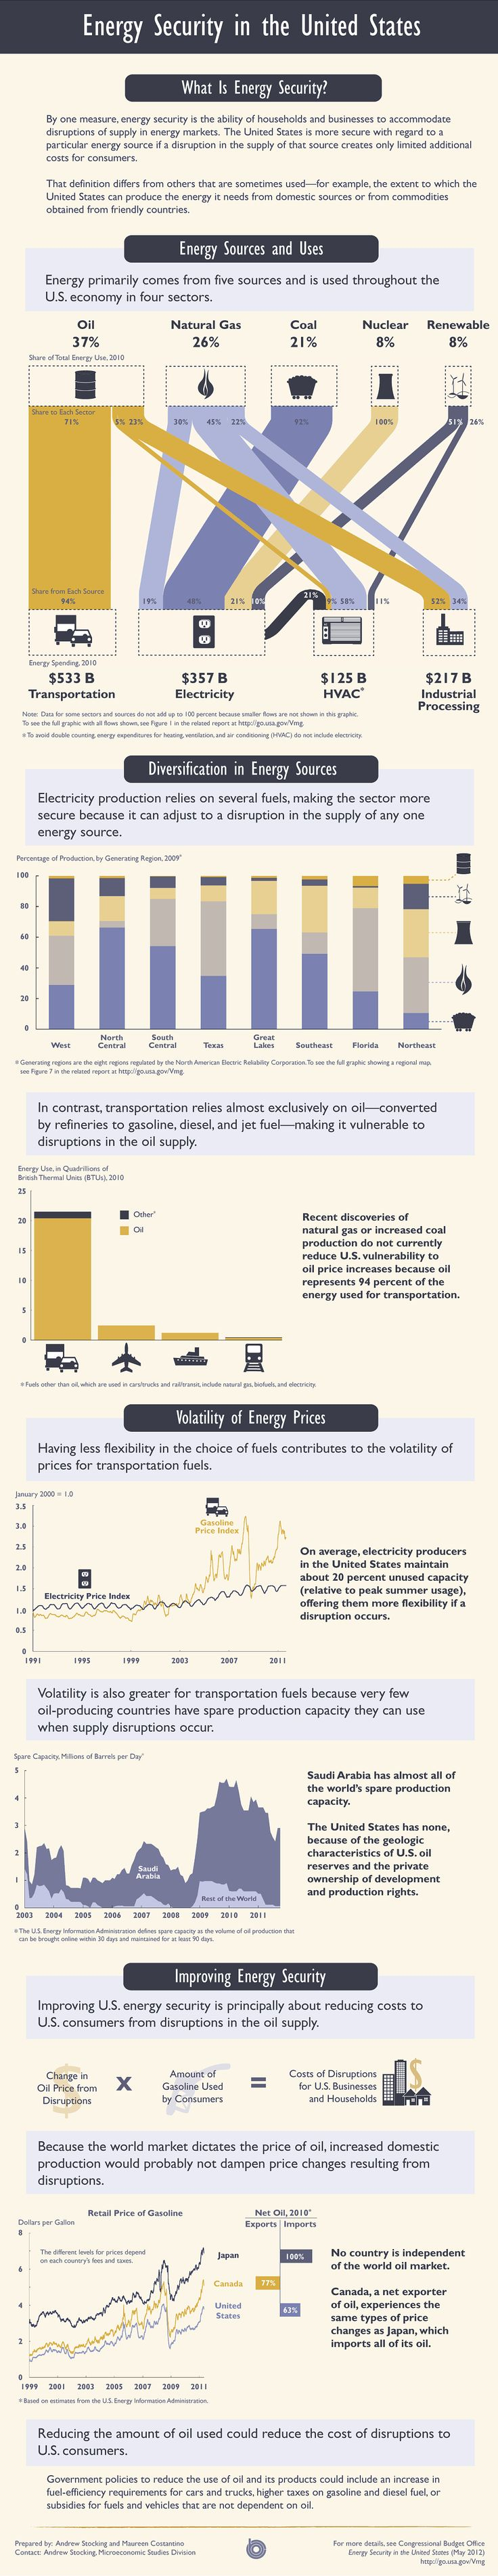 A great infographic for energy security in America. Did you know that 94 percent of the energy used for transportation comes from oil, and that renewable energy accounts for under 10% of our energy use?